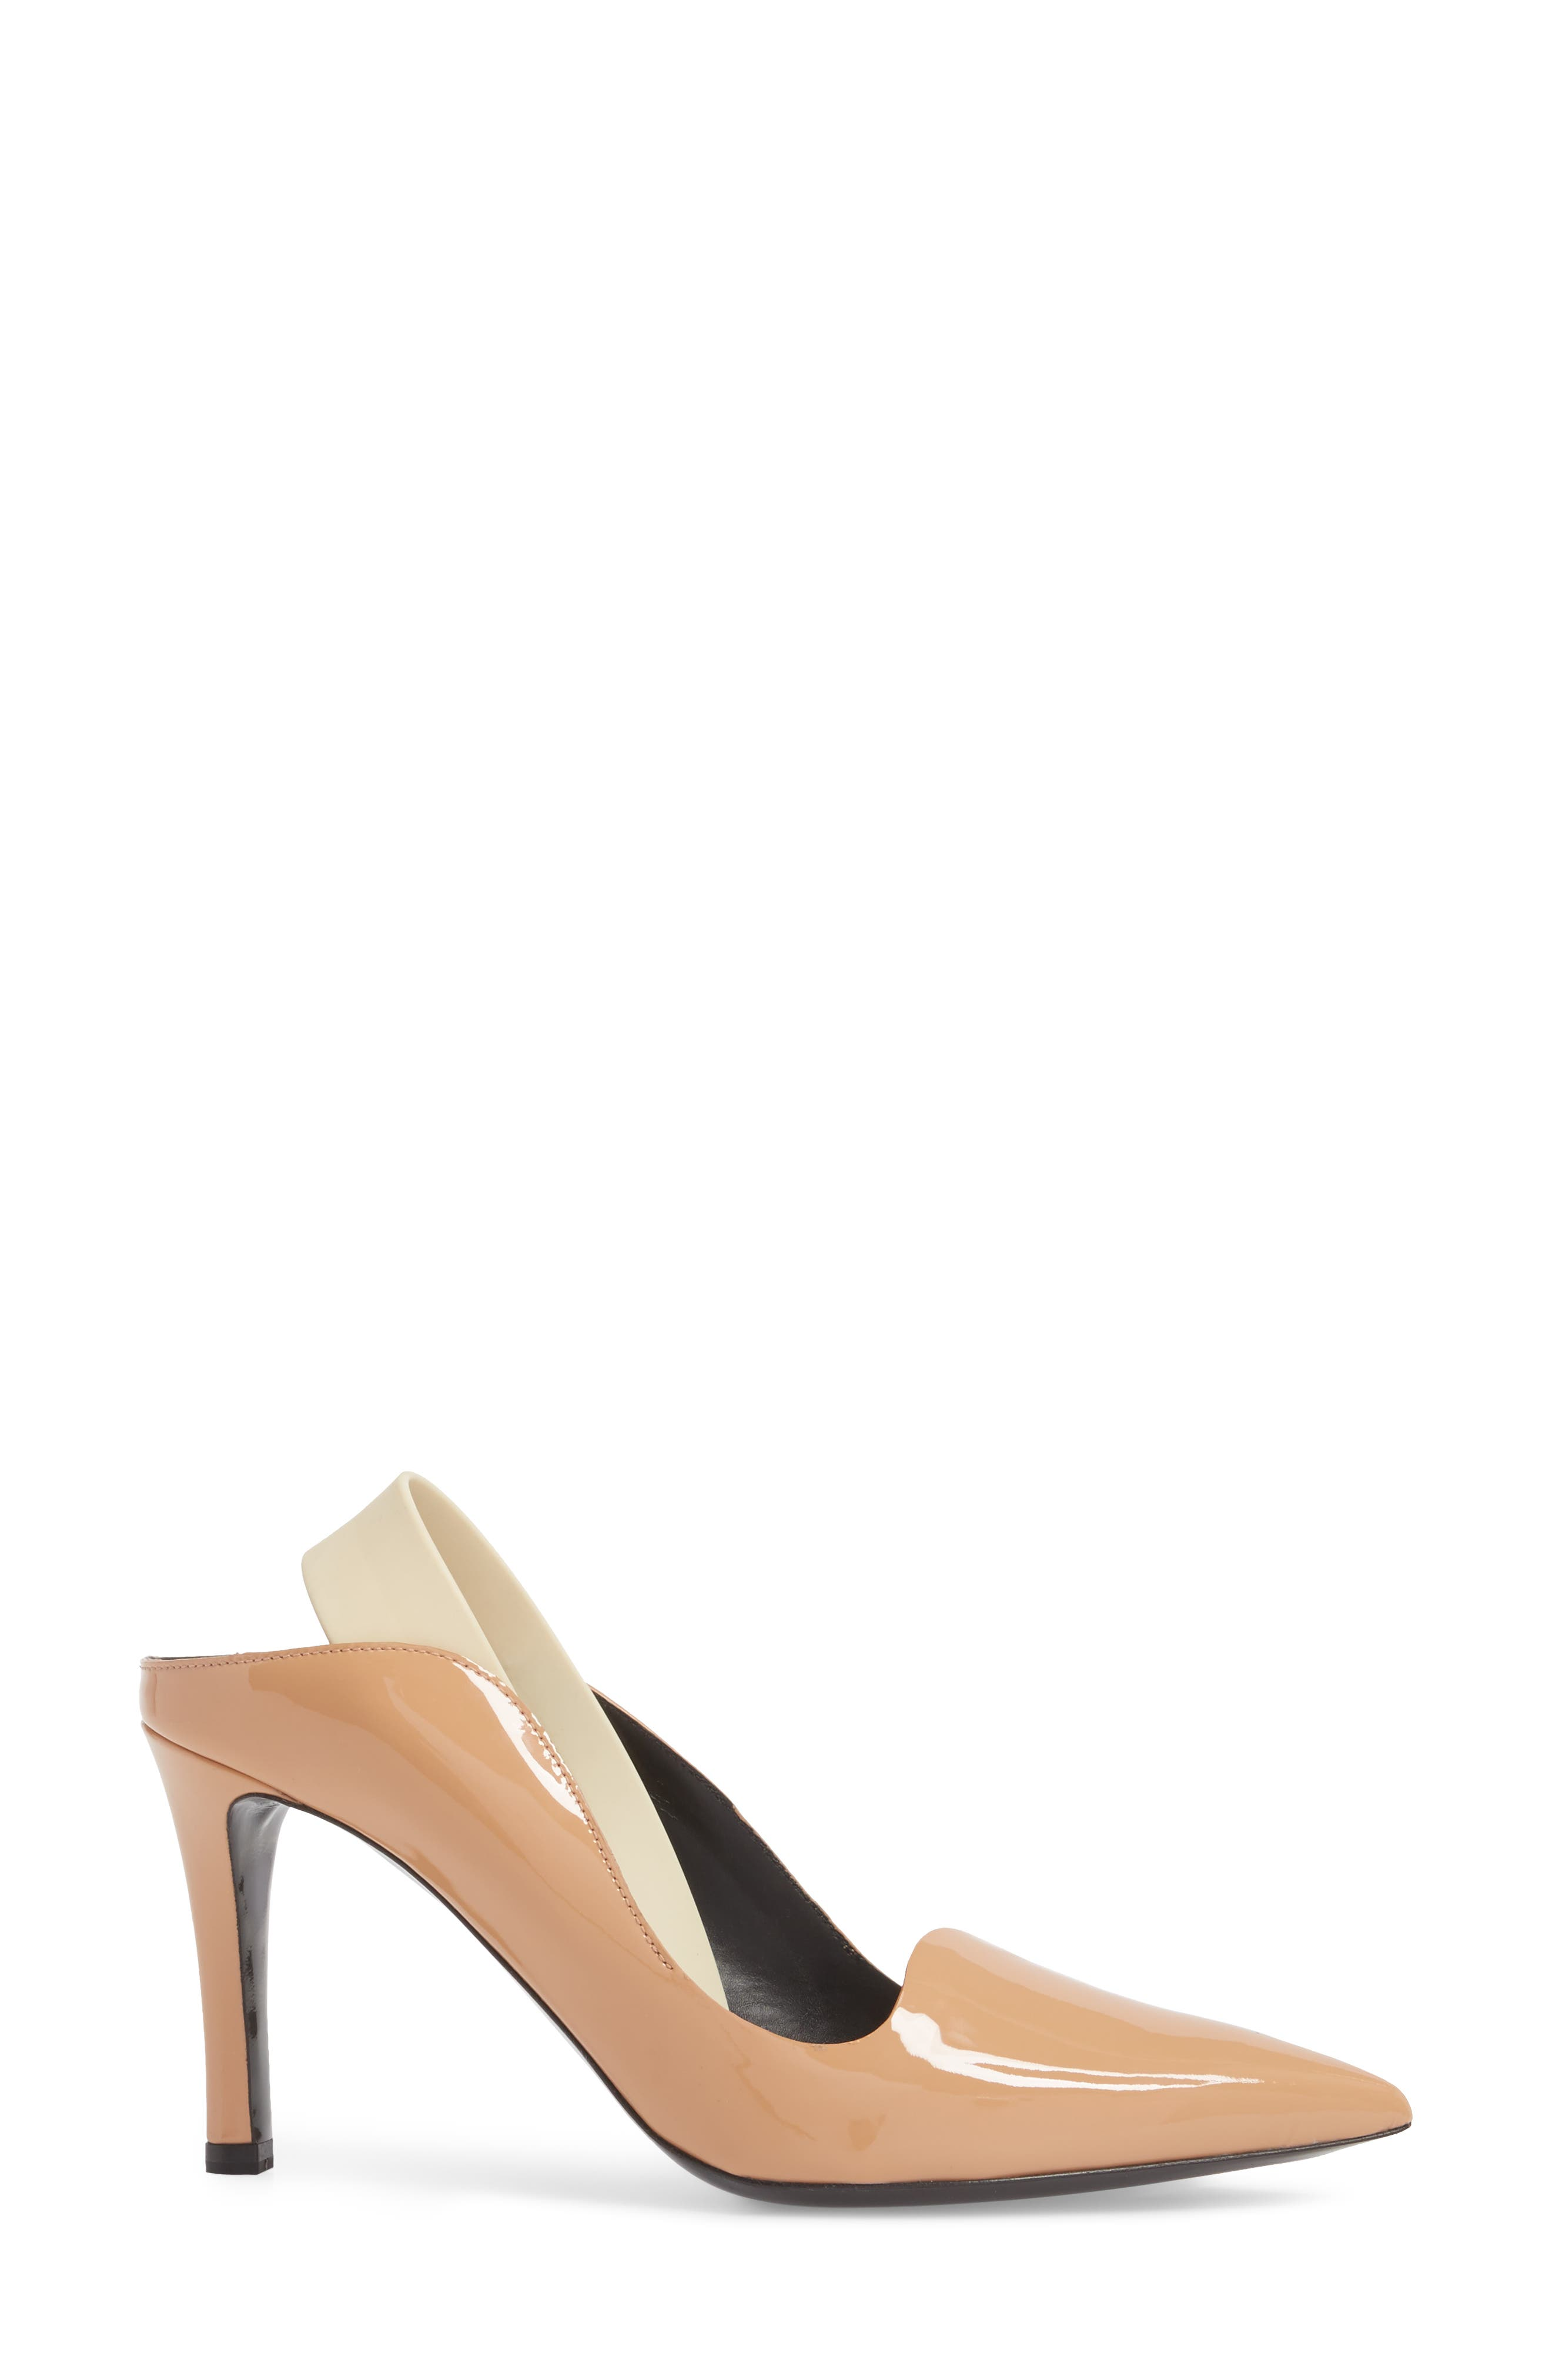 Wave Slingback Pump,                             Alternate thumbnail 3, color,                             Nude